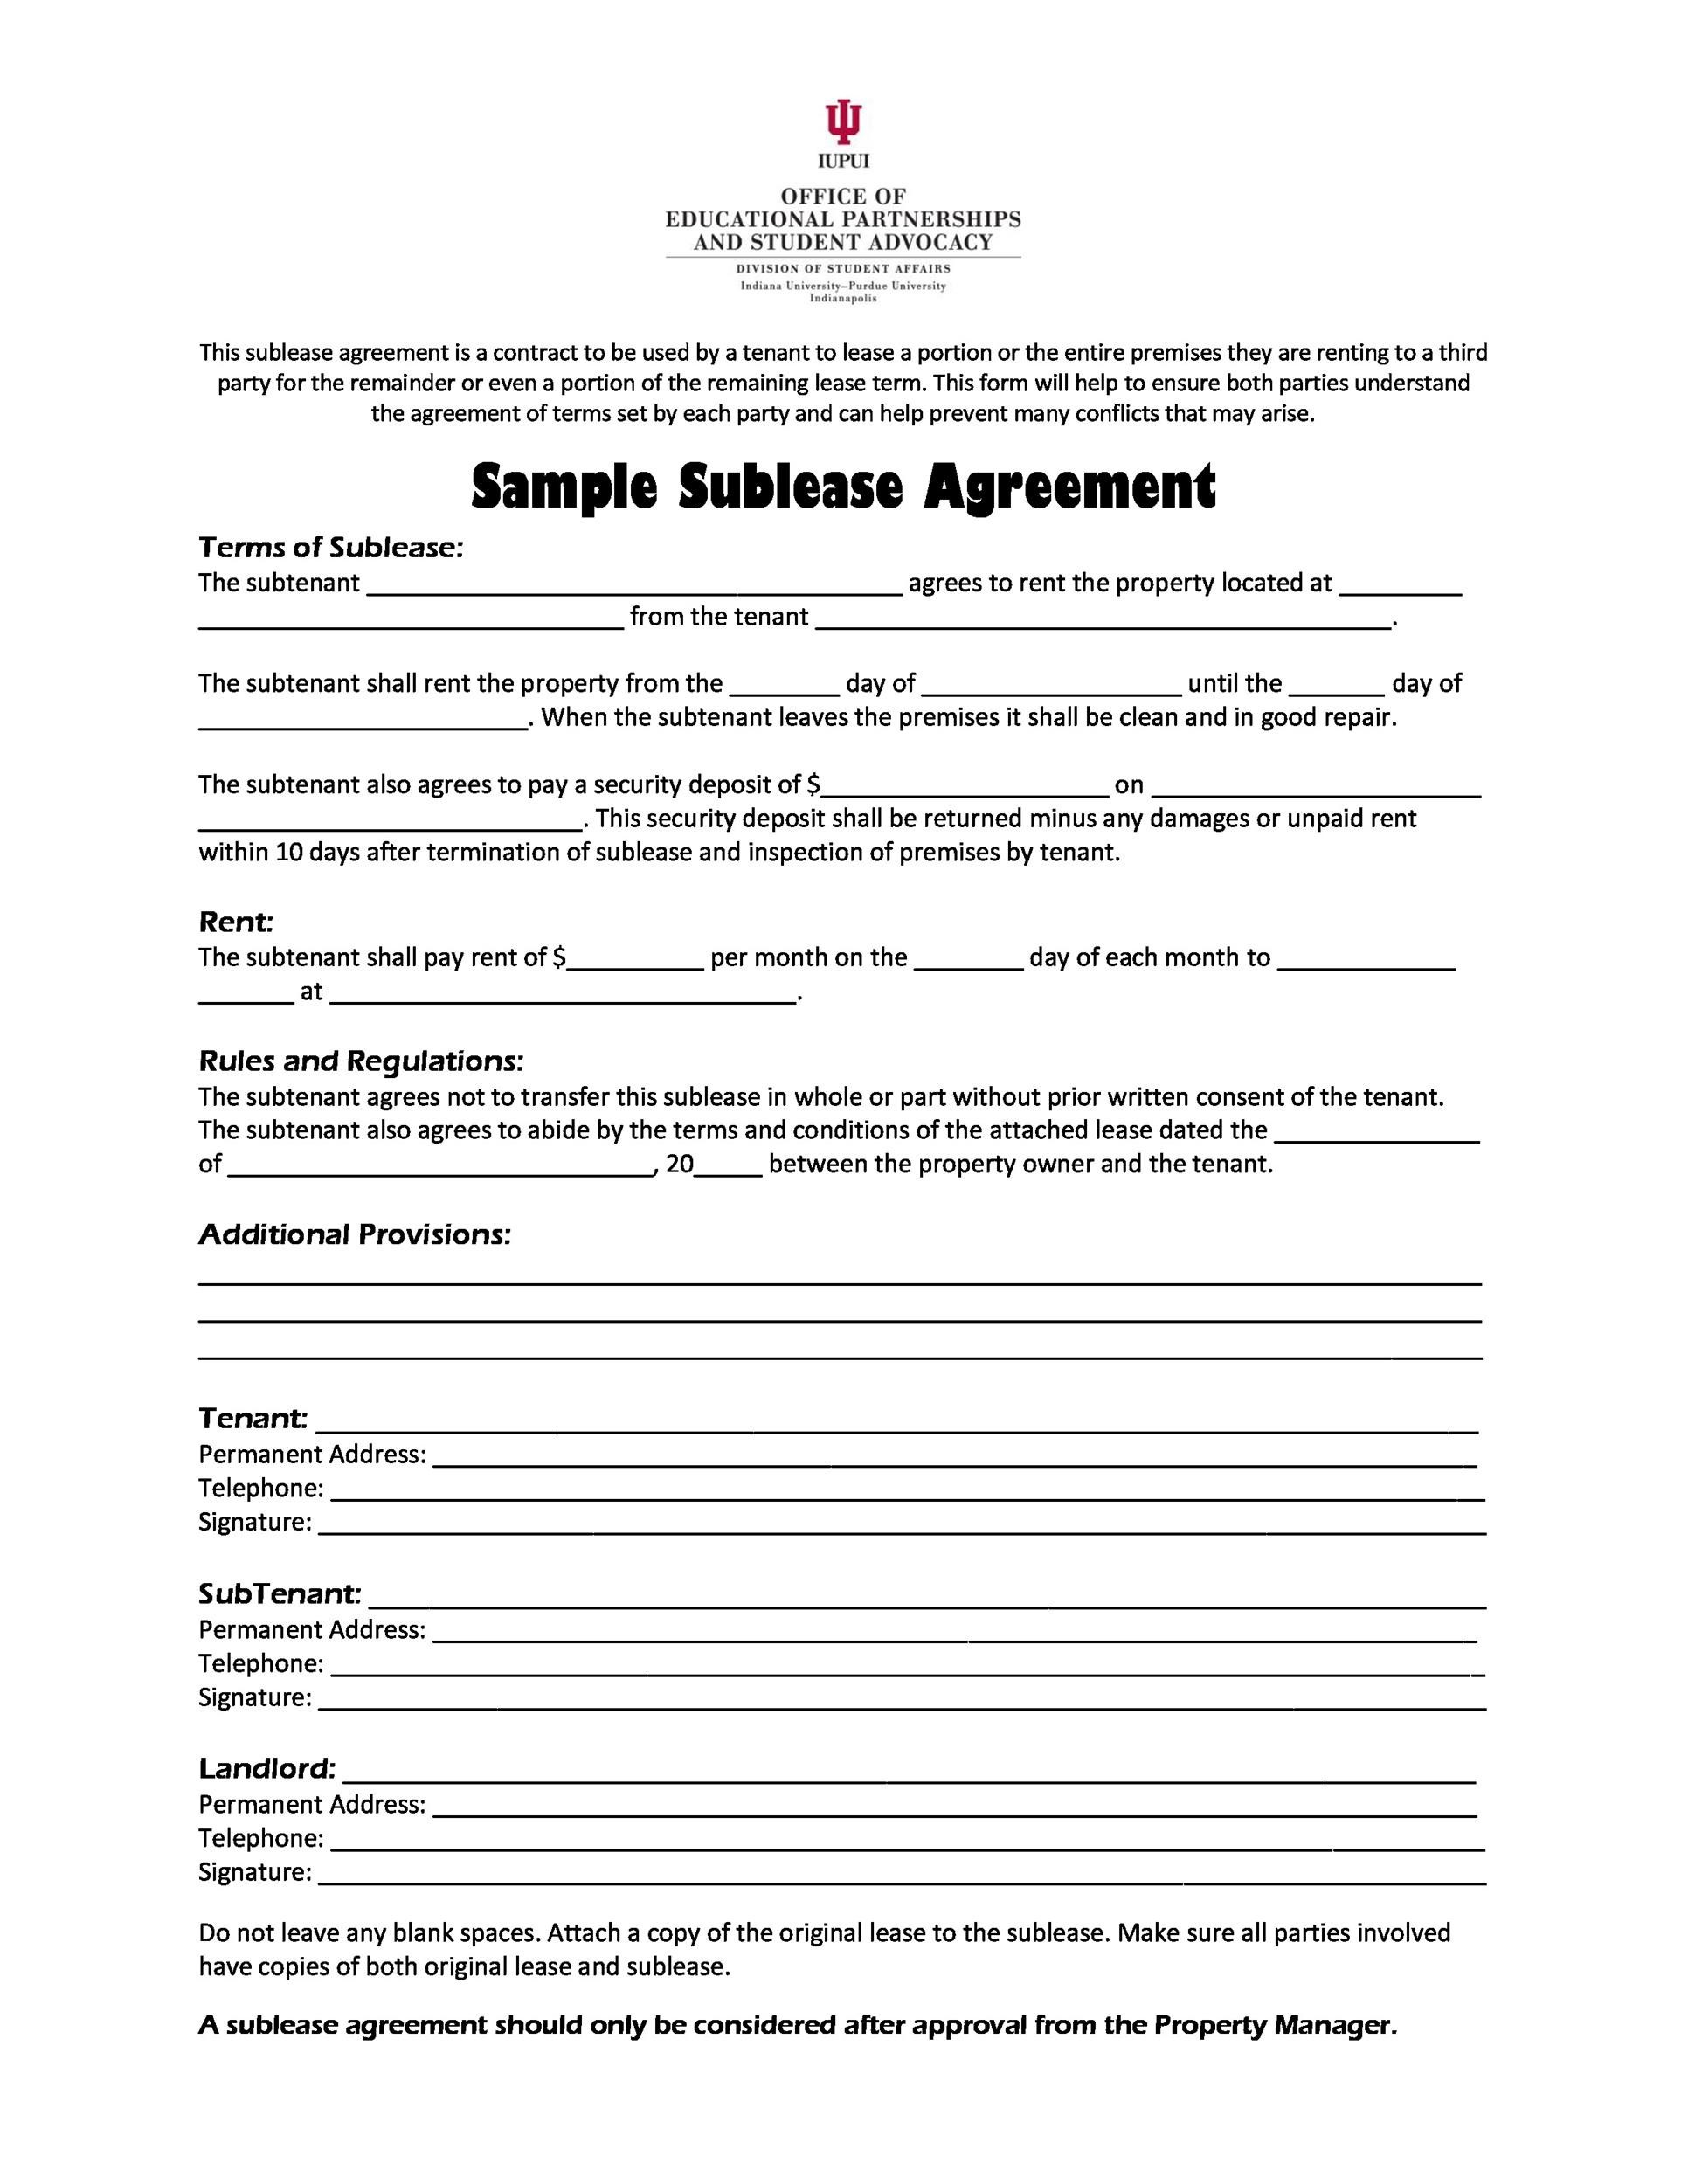 [Sample Property Lease Agreement Template] Contract